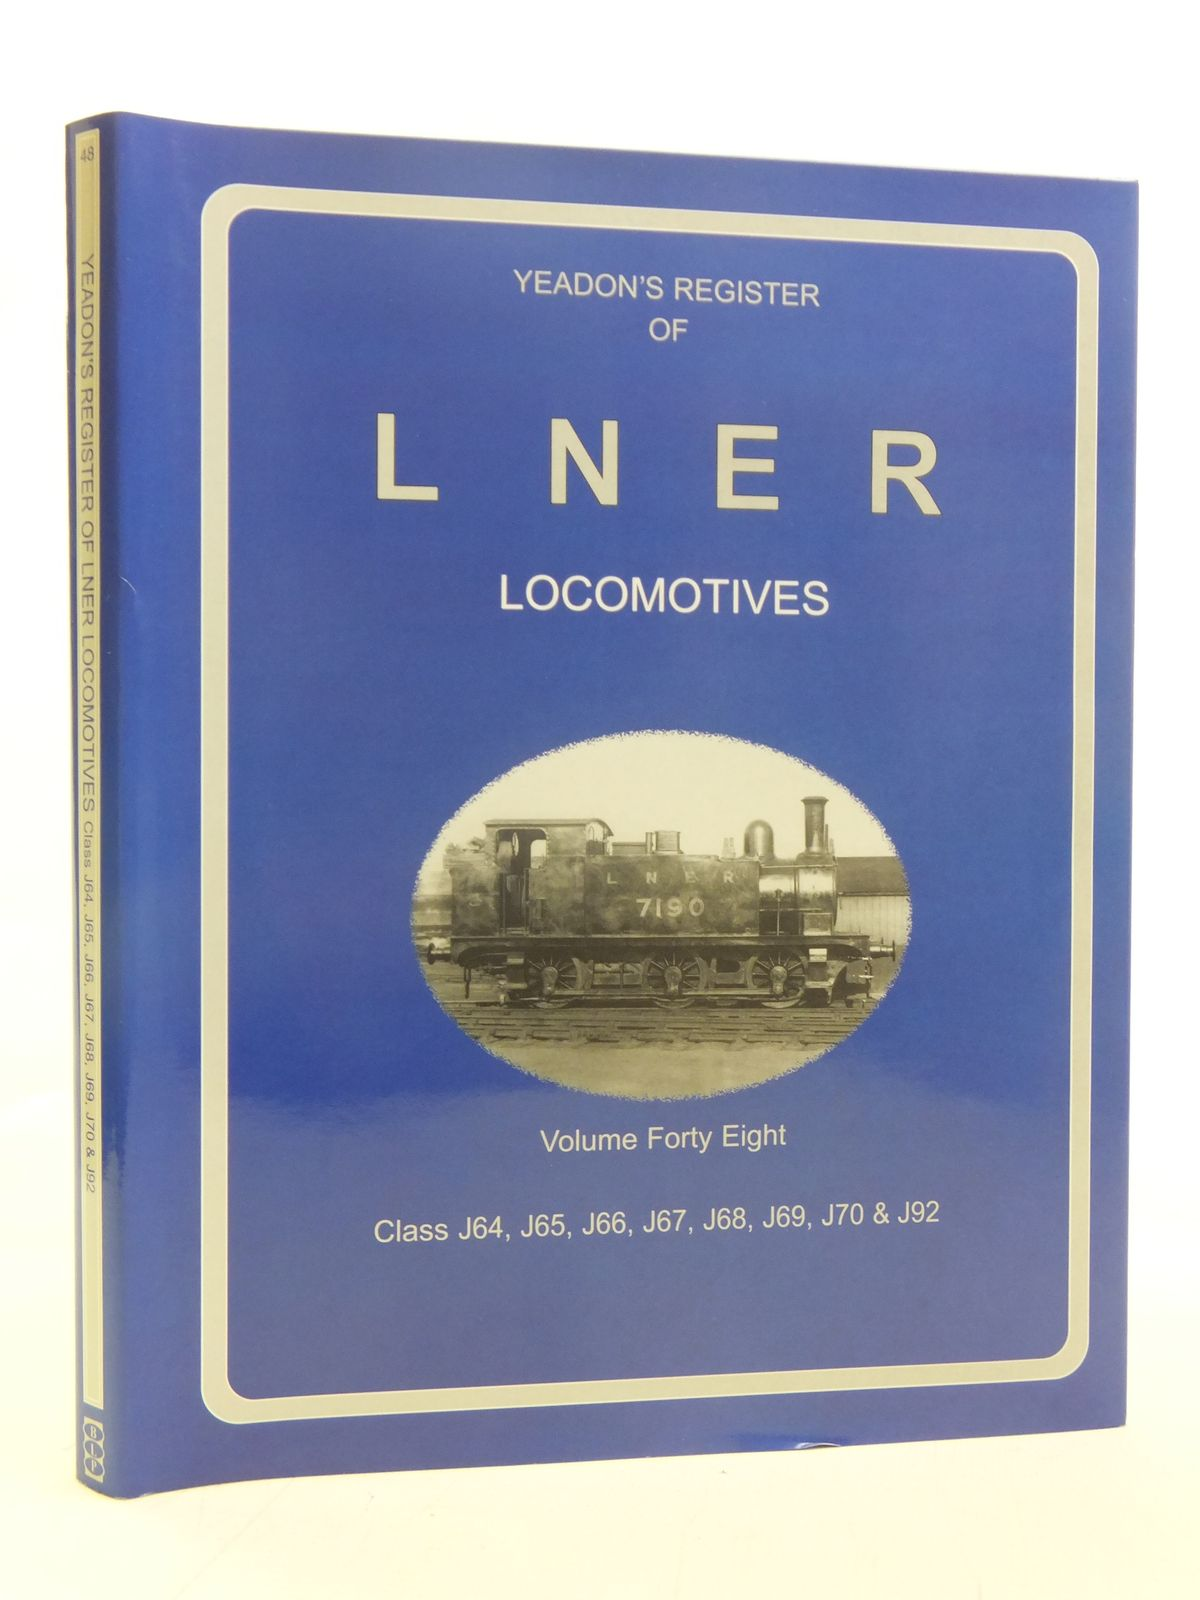 Photo of YEADON'S REGISTER OF LNER LOCOMOTIVES VOLUME FORTY EIGHT published by Book Law Publications, Challenger Publications (STOCK CODE: 1606919)  for sale by Stella & Rose's Books